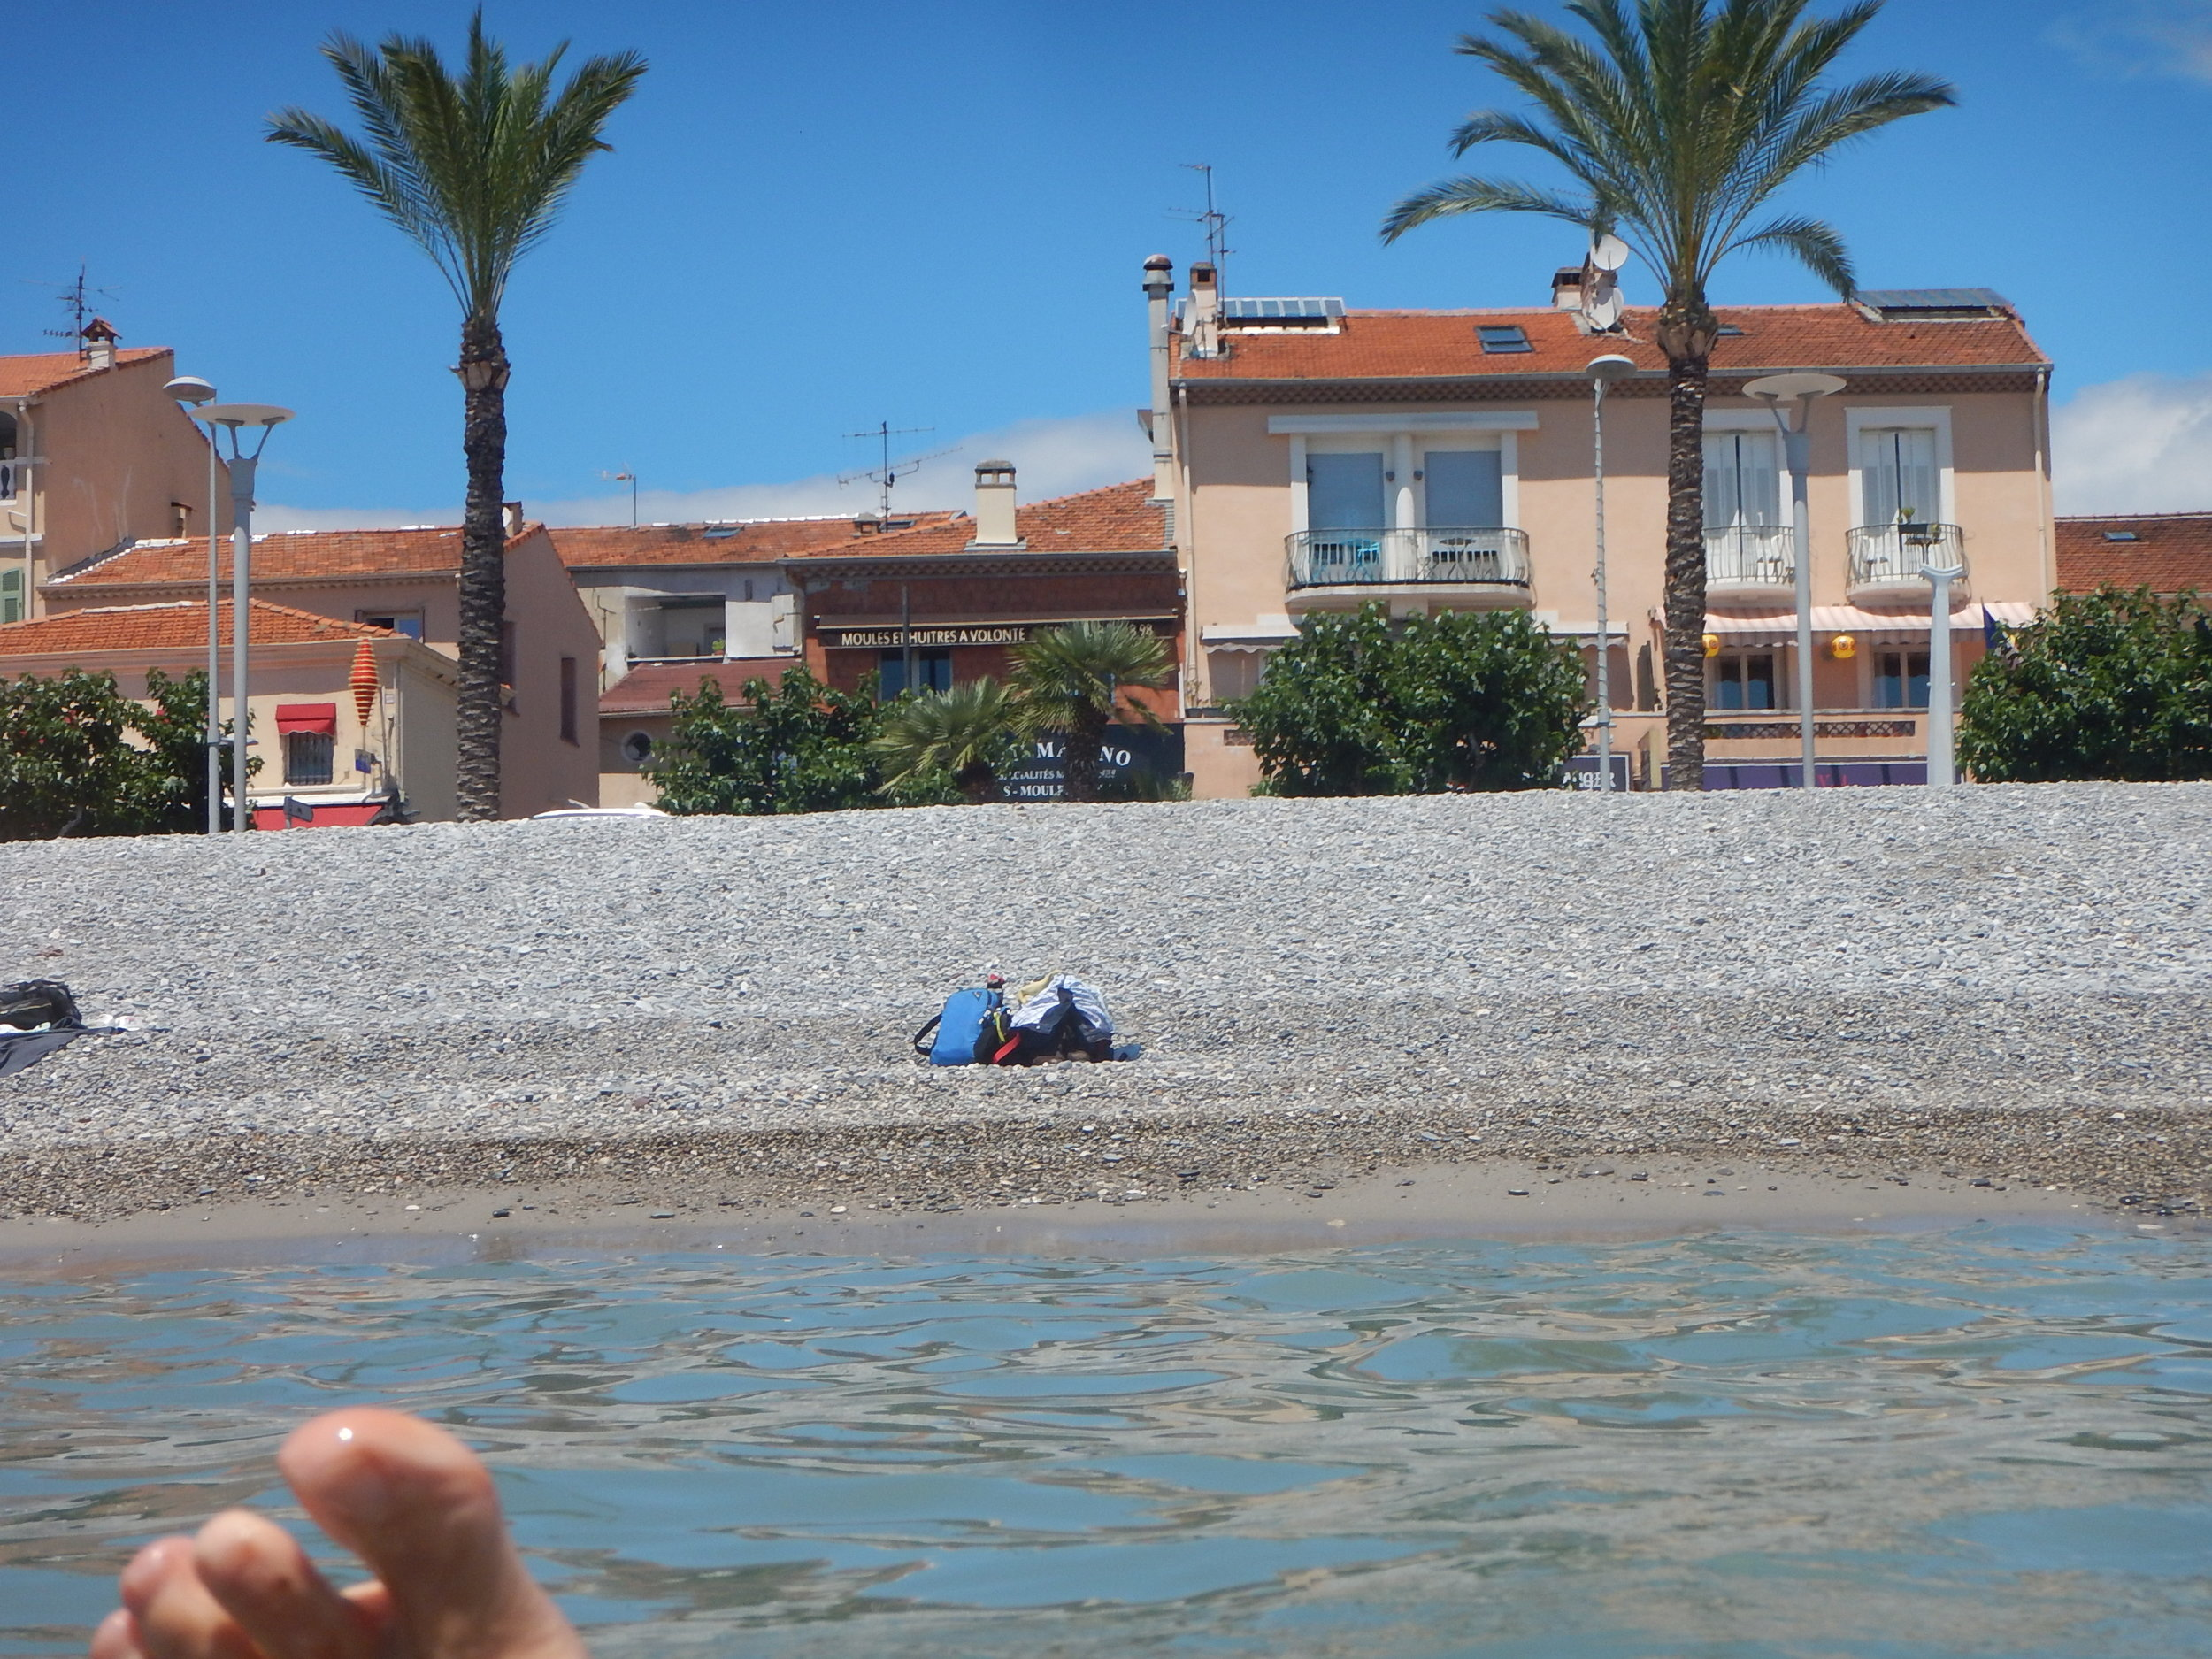 A pebbly beach just across from a cafe strip. My blue bag being minded by Harri.